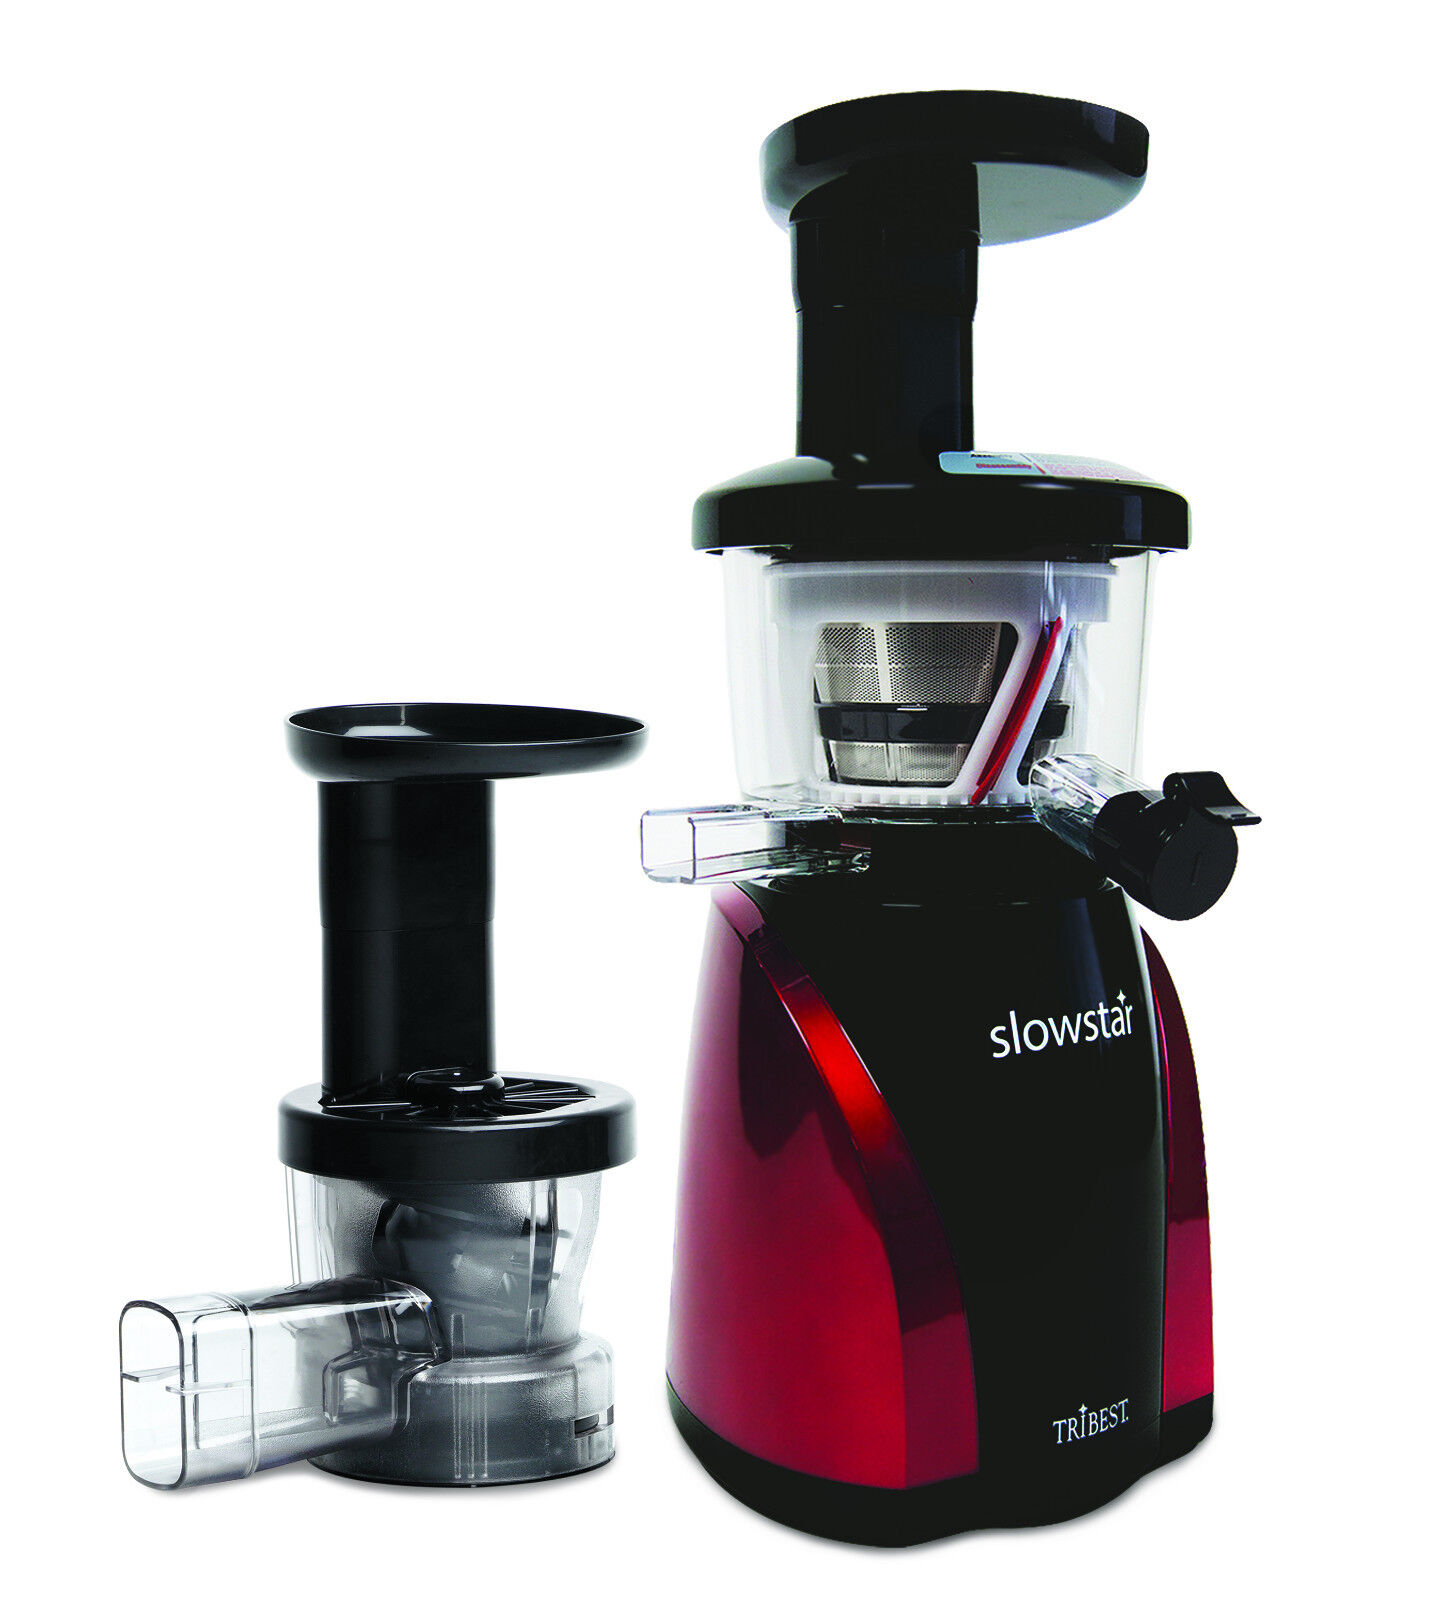 SlowStar Low Speed greenical Juicer with Mincer & Juice Cap TriBeste SW-2000